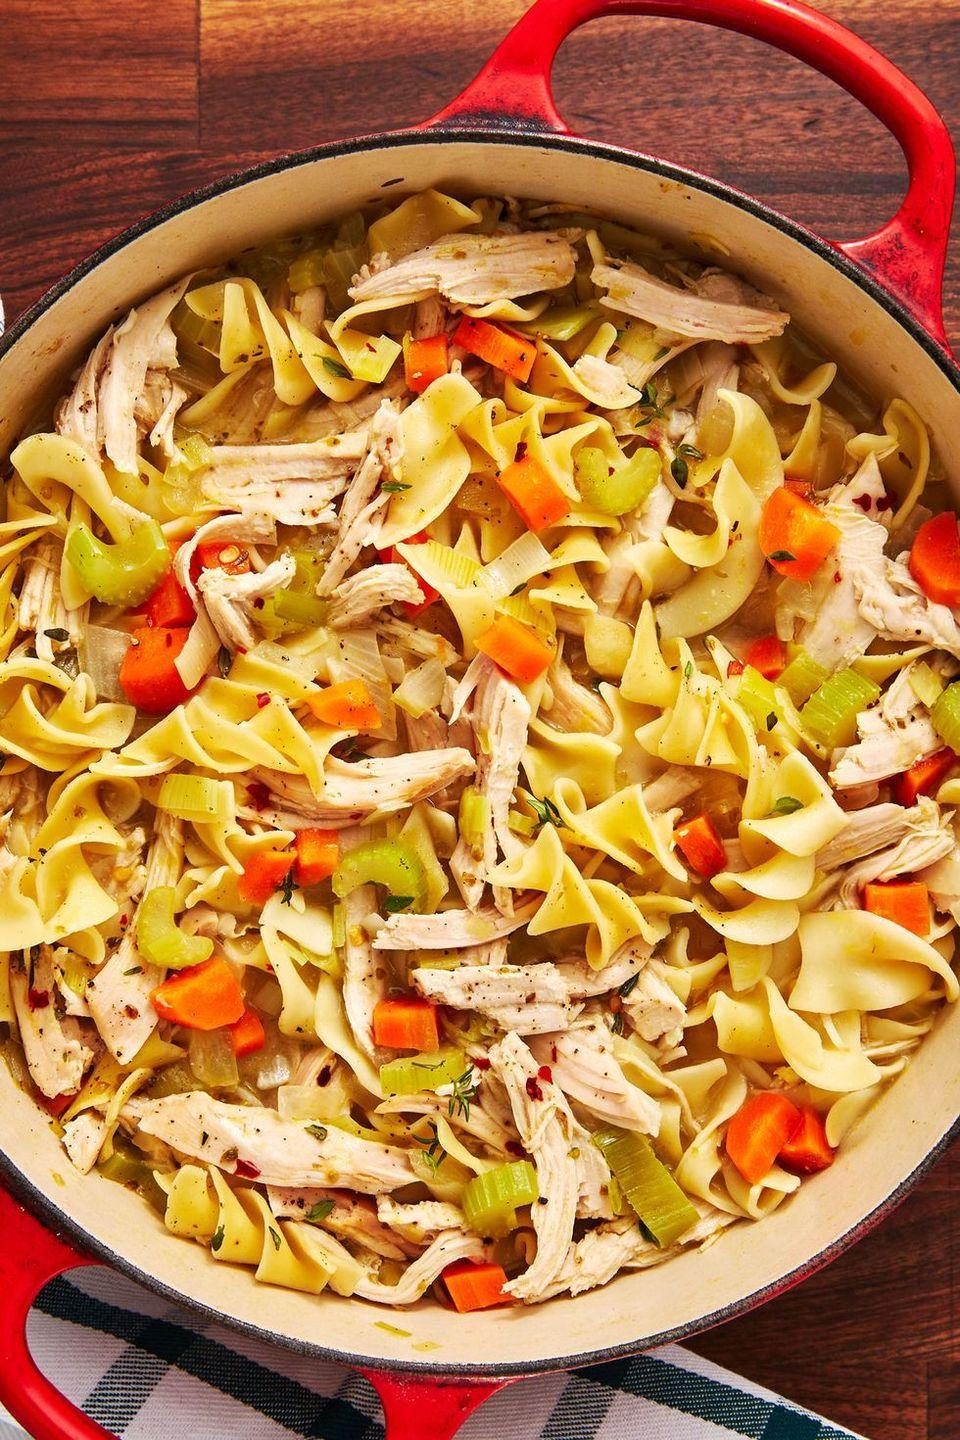 """<p>A unique take on a classic, use shredded turkey instead of chicken.</p><p><em><a href=""""https://www.delish.com/cooking/recipe-ideas/a29089192/turkey-noodle-soup-recipe/"""" rel=""""nofollow noopener"""" target=""""_blank"""" data-ylk=""""slk:Get the recipe from Delish »"""" class=""""link rapid-noclick-resp"""">Get the recipe from Delish »</a></em></p>"""